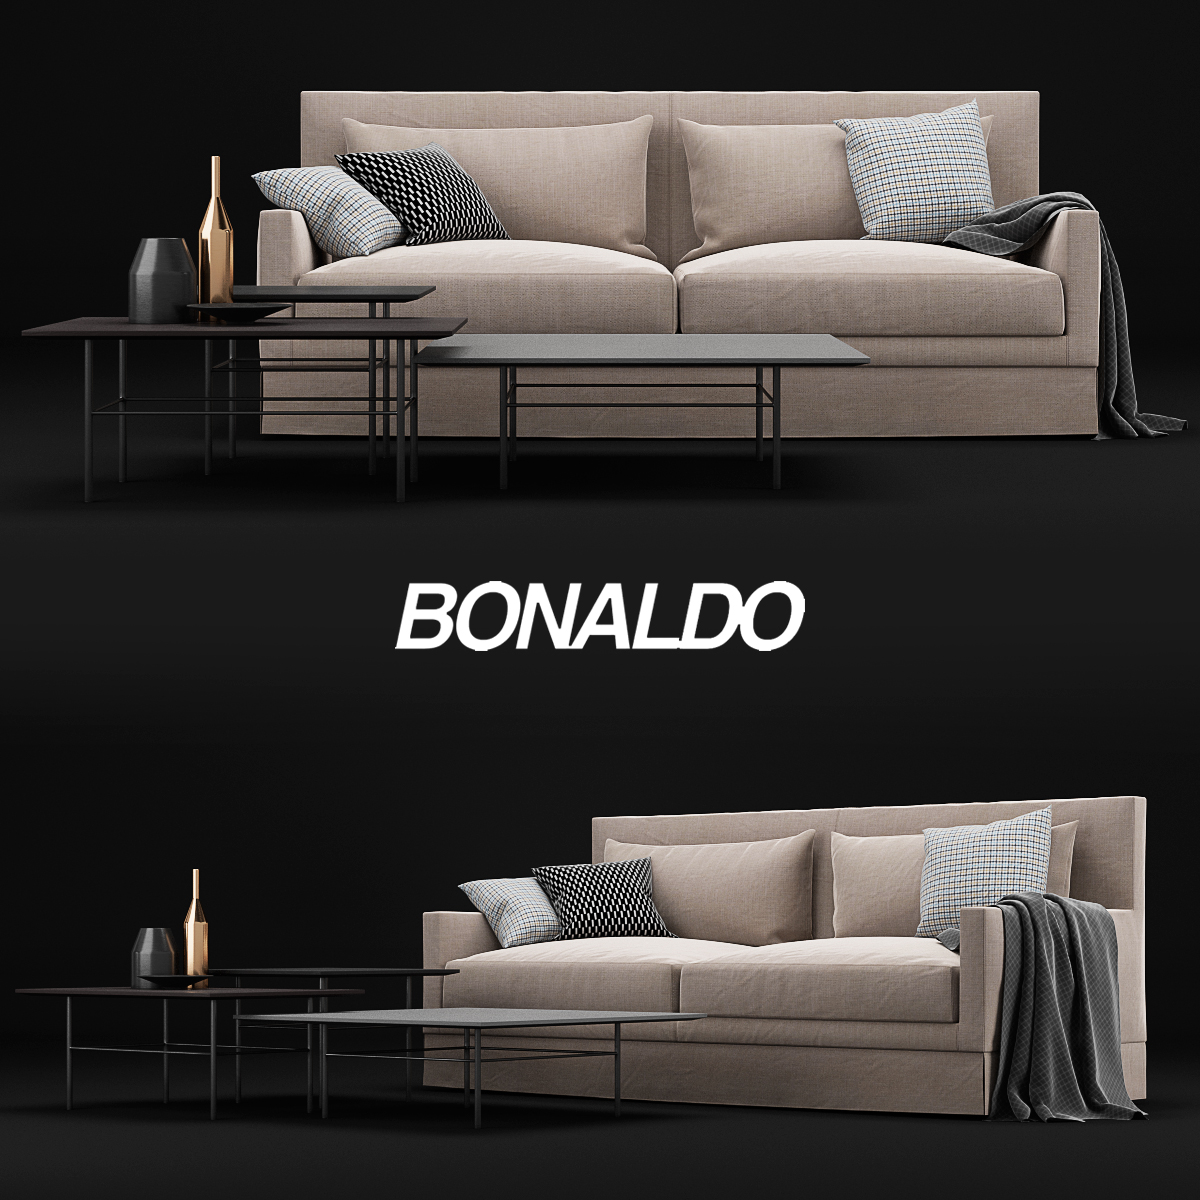 3D Model Bonaldo Paraiso Sofa Free Download